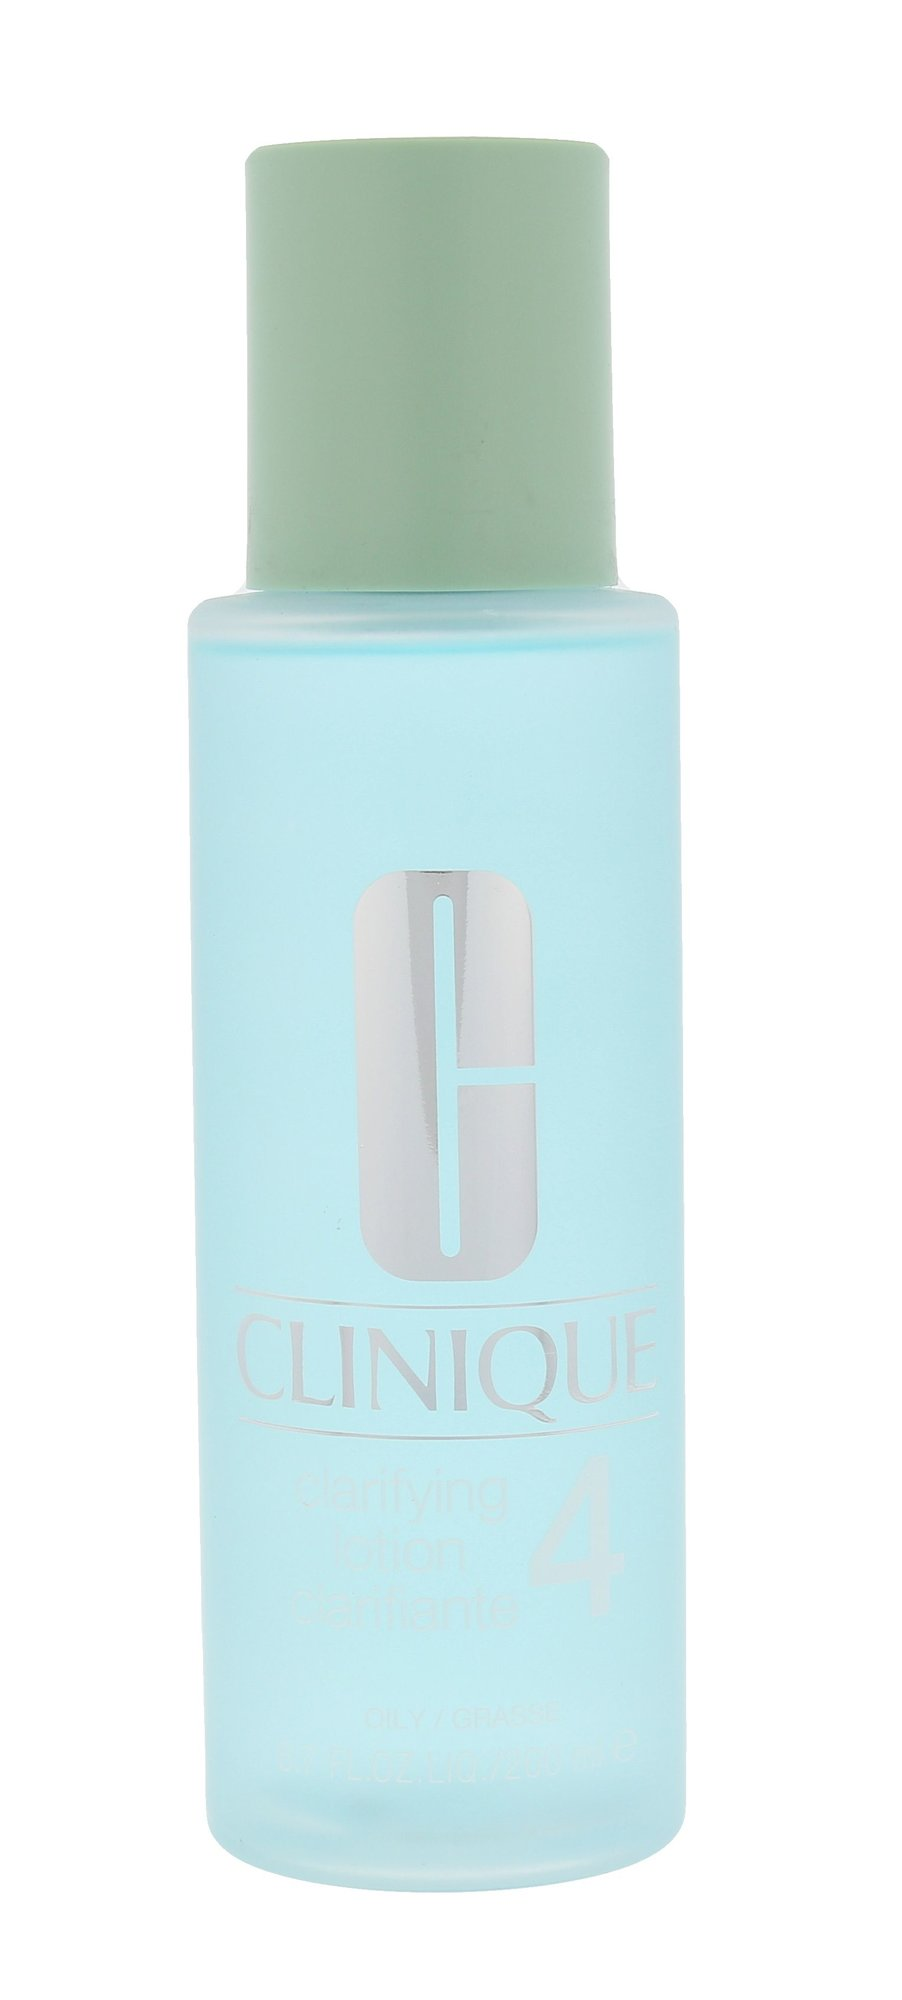 Clinique 3-Step Skin Care 4 Cosmetic 200ml